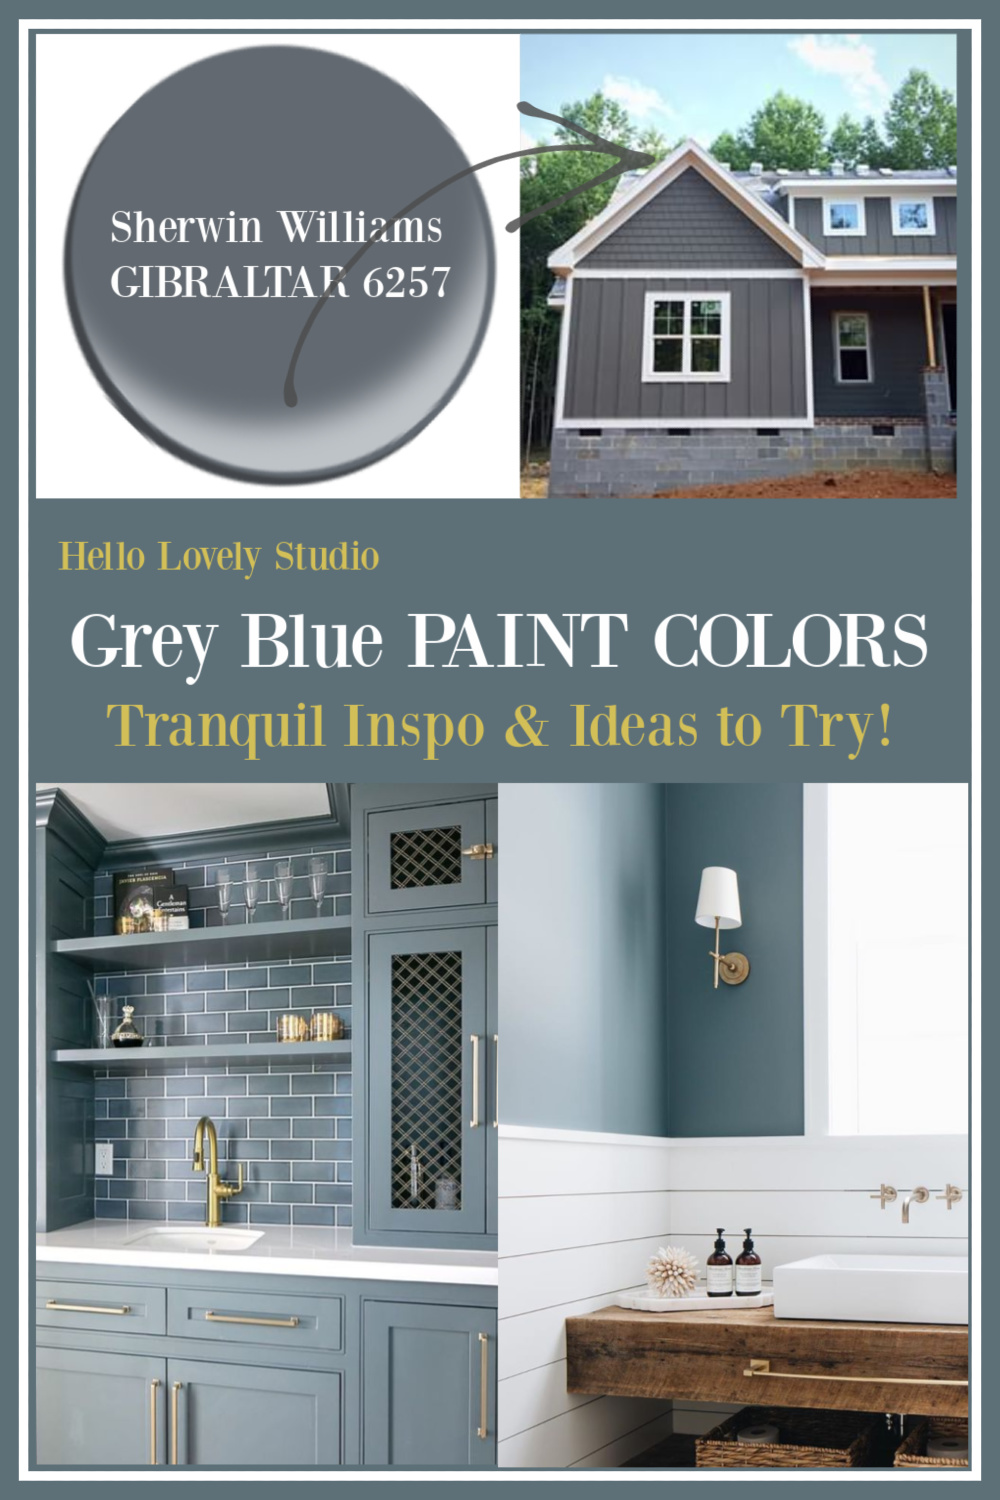 Grey Blue Paint Colors to Try - come find inspiration and names of paint to sample on Hello Lovely! #paintcolors #slateblue #slategreay #bluegrey #greyblue #graypaint